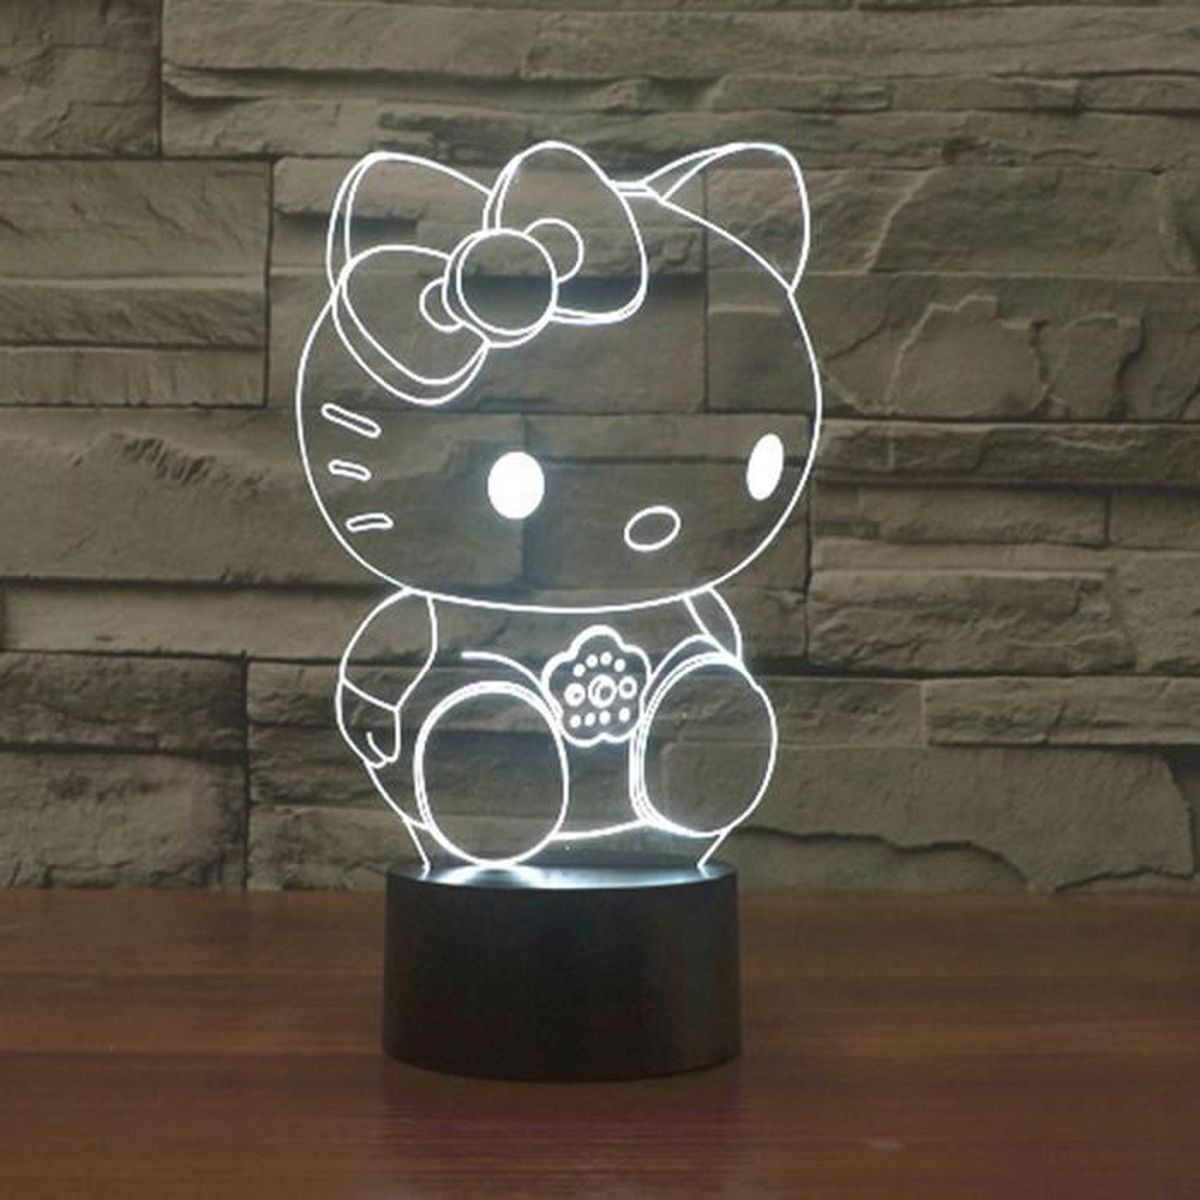 lampe a poser lampe 3d hello kitty lampe a poser sur table 3d l - Lustre Hello Kitty Chambre